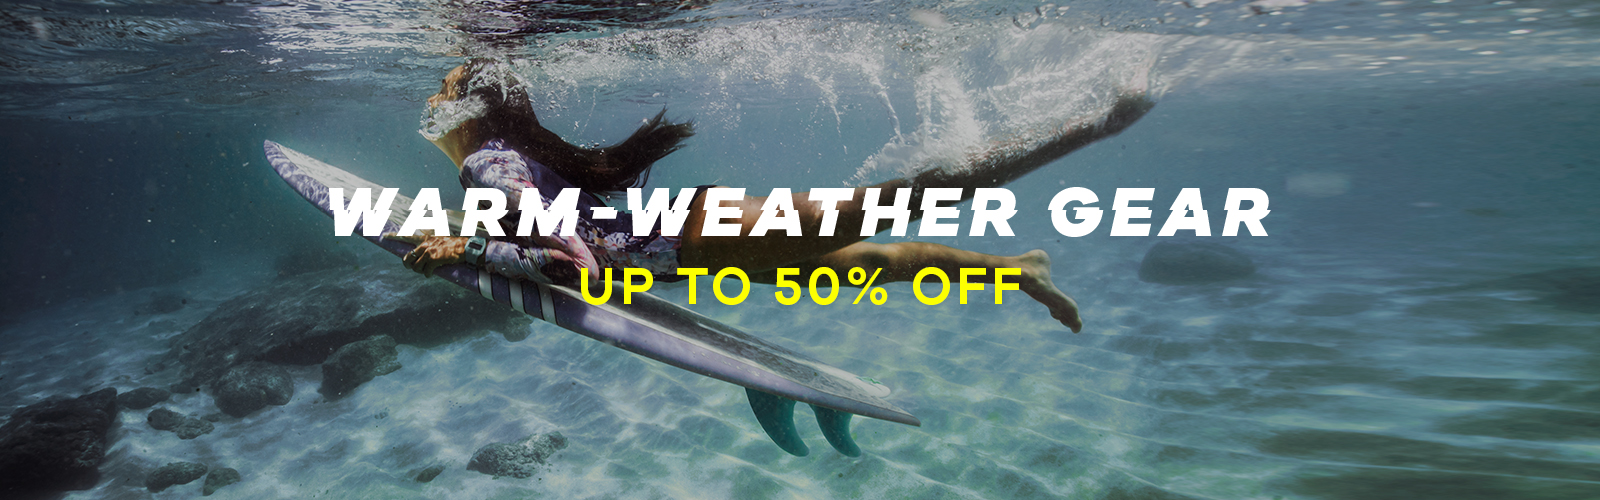 Warm-weather gear | Up to 50% off